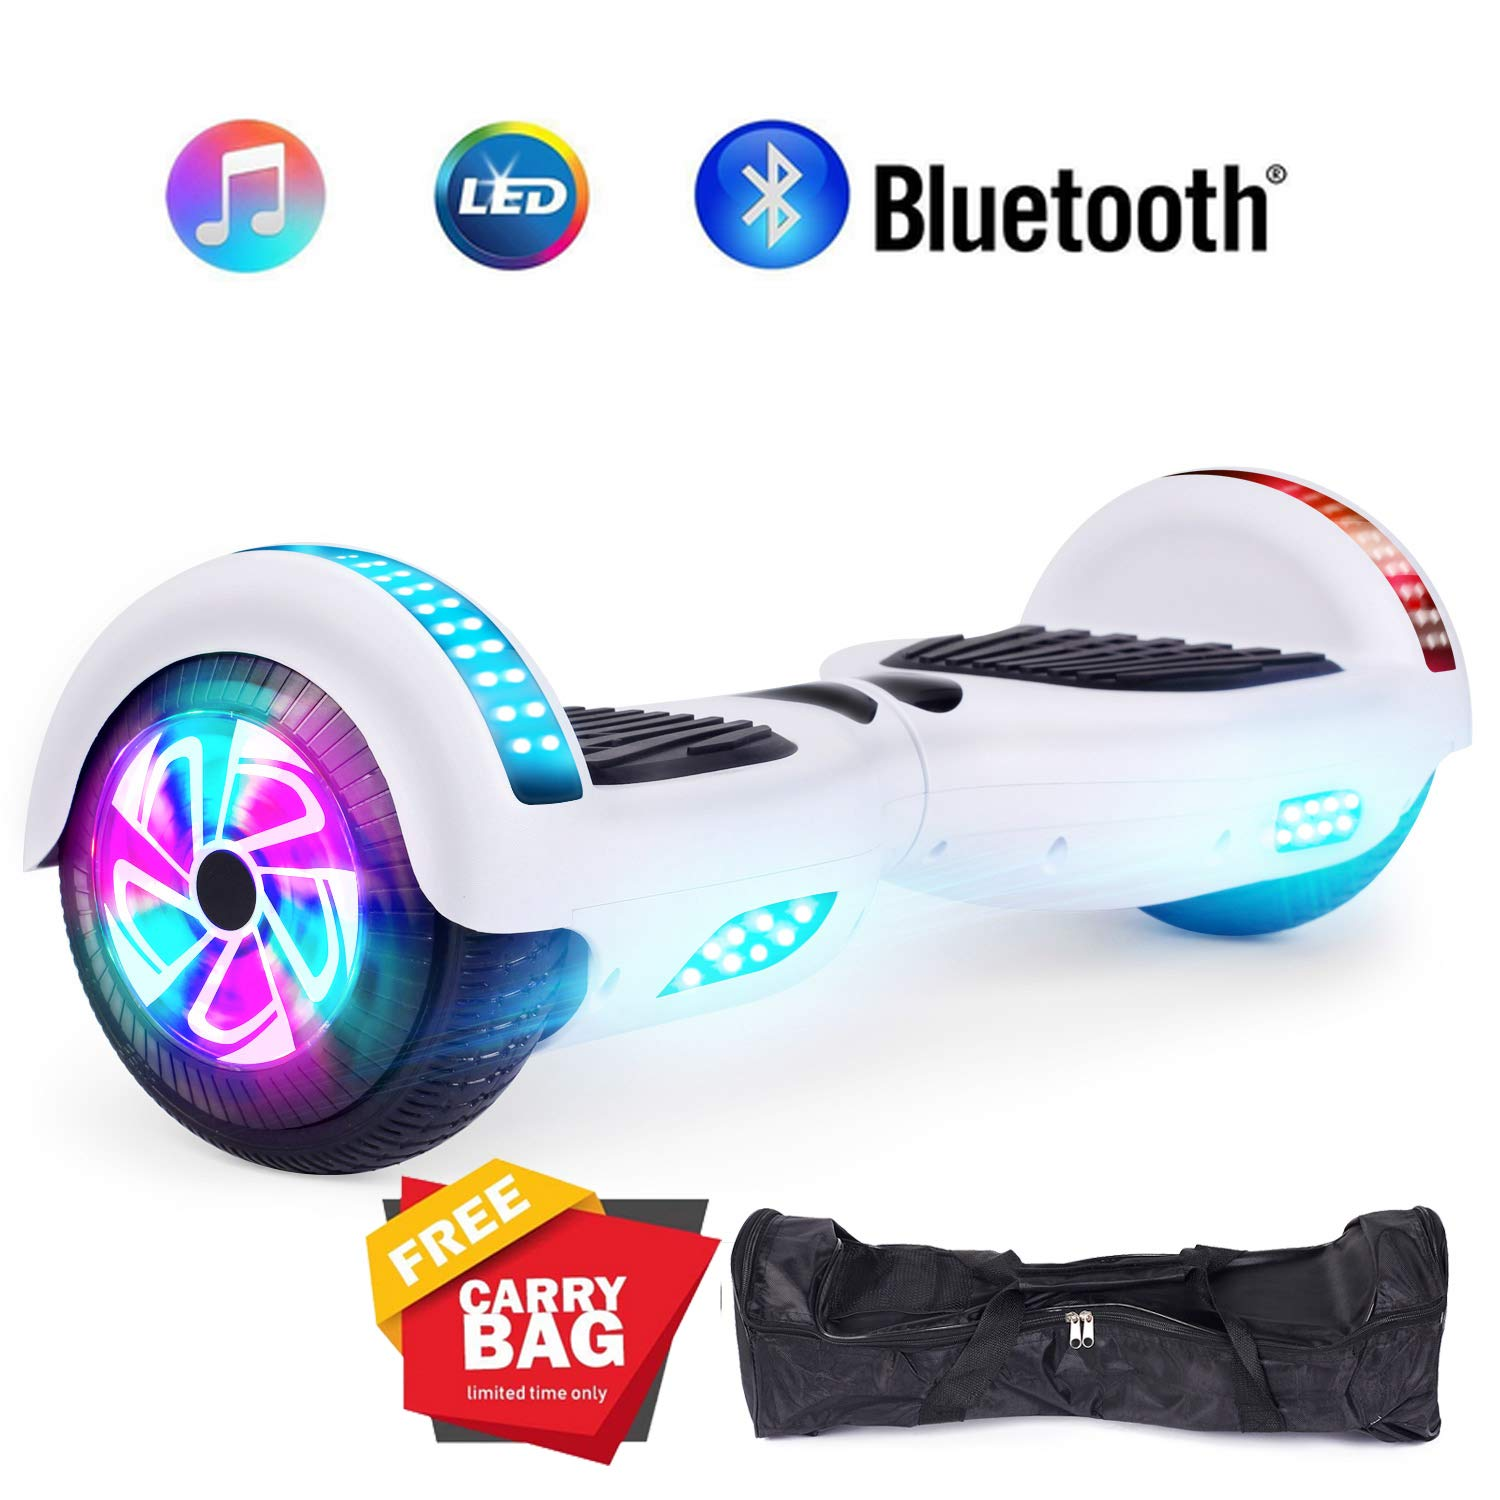 Hoverboard Motherboard Top Deals Lowest Price Balance Scooter Circuit Repair Kit Board Main Hover Replacement Jolege Smart Scooters Two Wheel Self Balancing Electric For Kids Adults 65